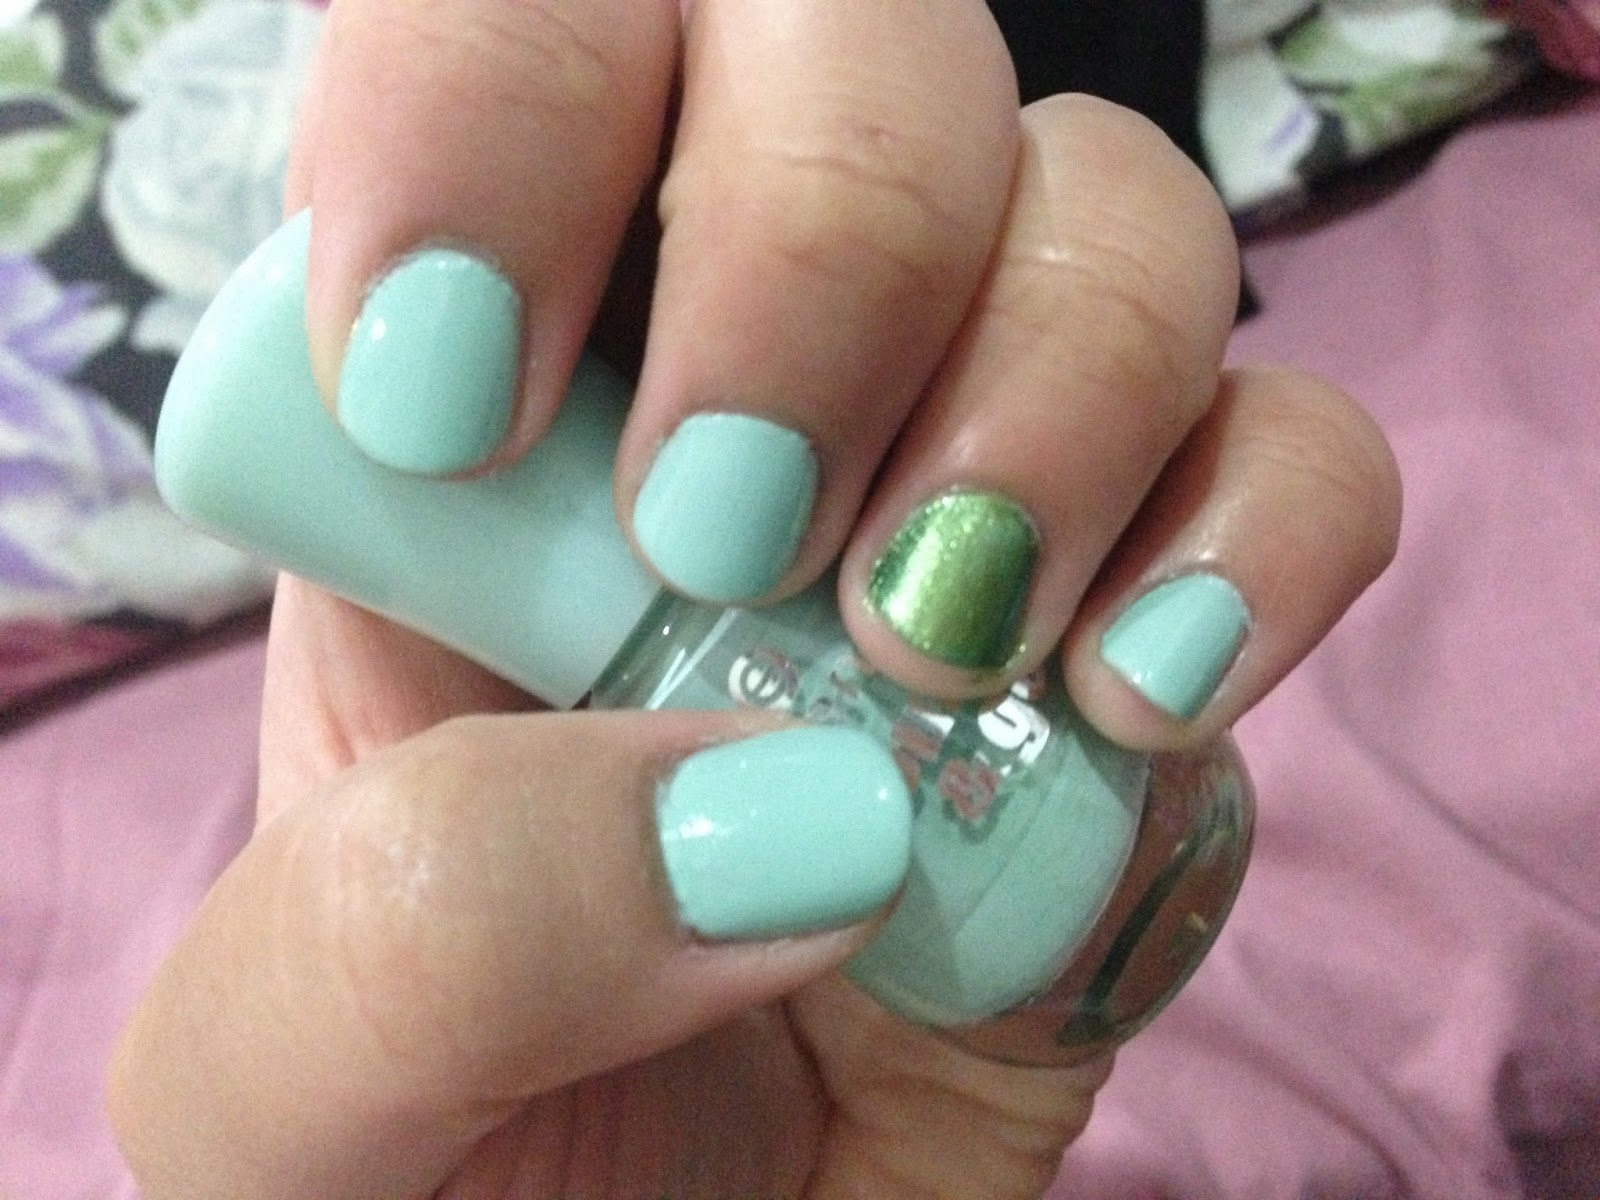 Essence Colour & Go Nail Polish In Shade 146 That's What I Mint! with accent nail colour, Maybelline's Color Show Nail Polish in the limited edition shade, 700 Avante Green.